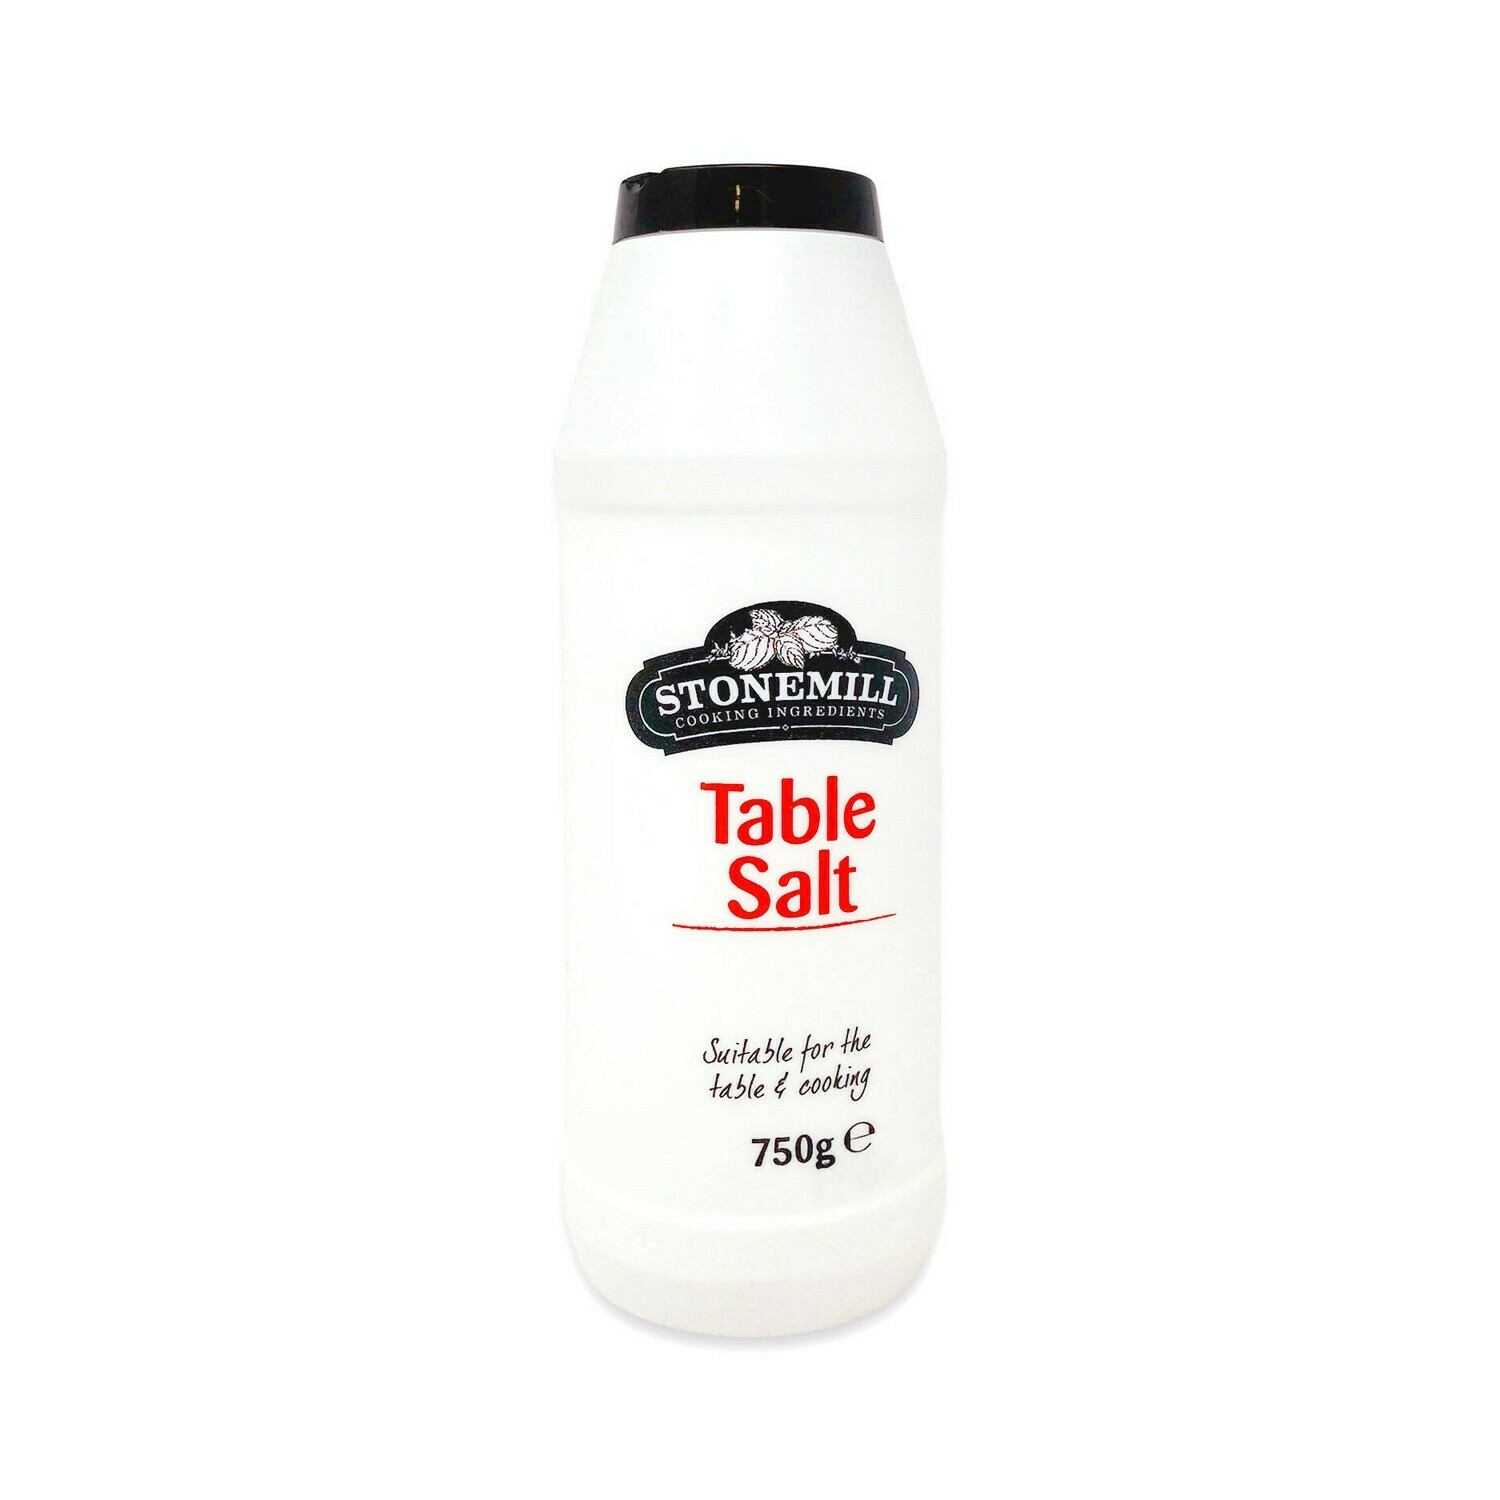 Aldi Table Salt 750g